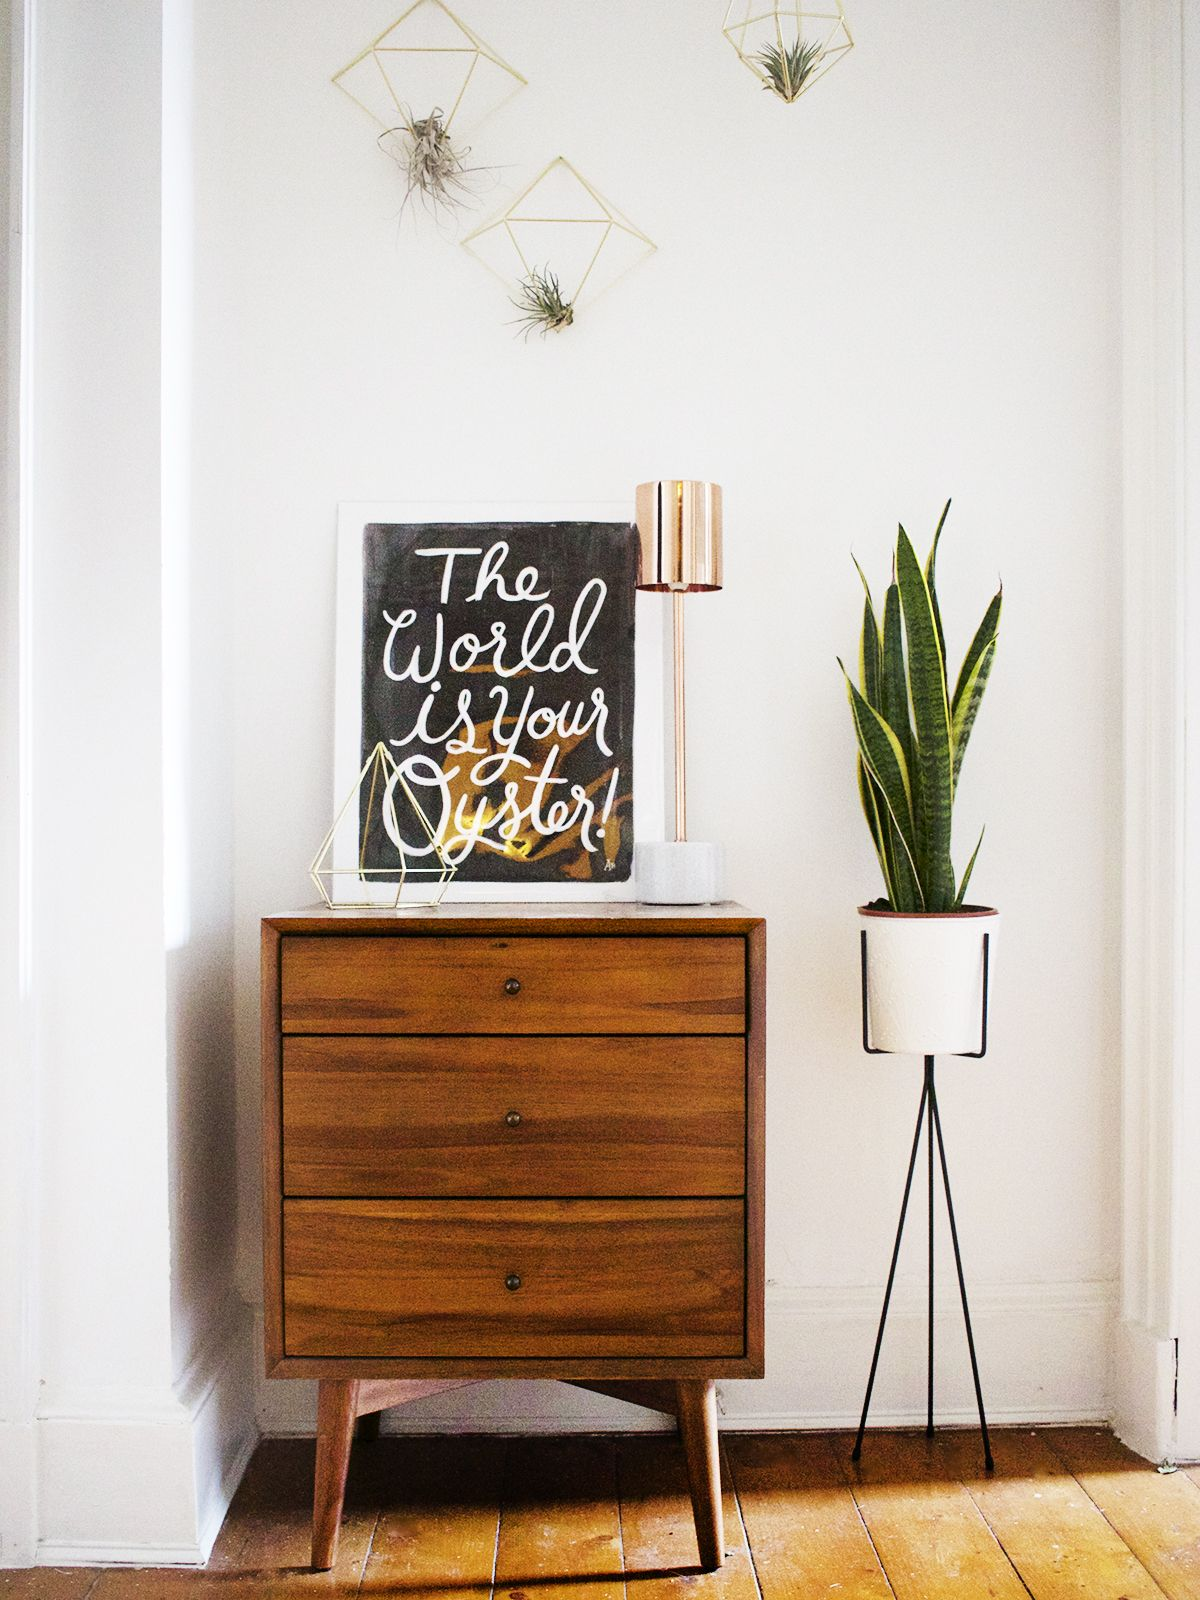 Creative houseplants in a midcentury inspired hallway by kate